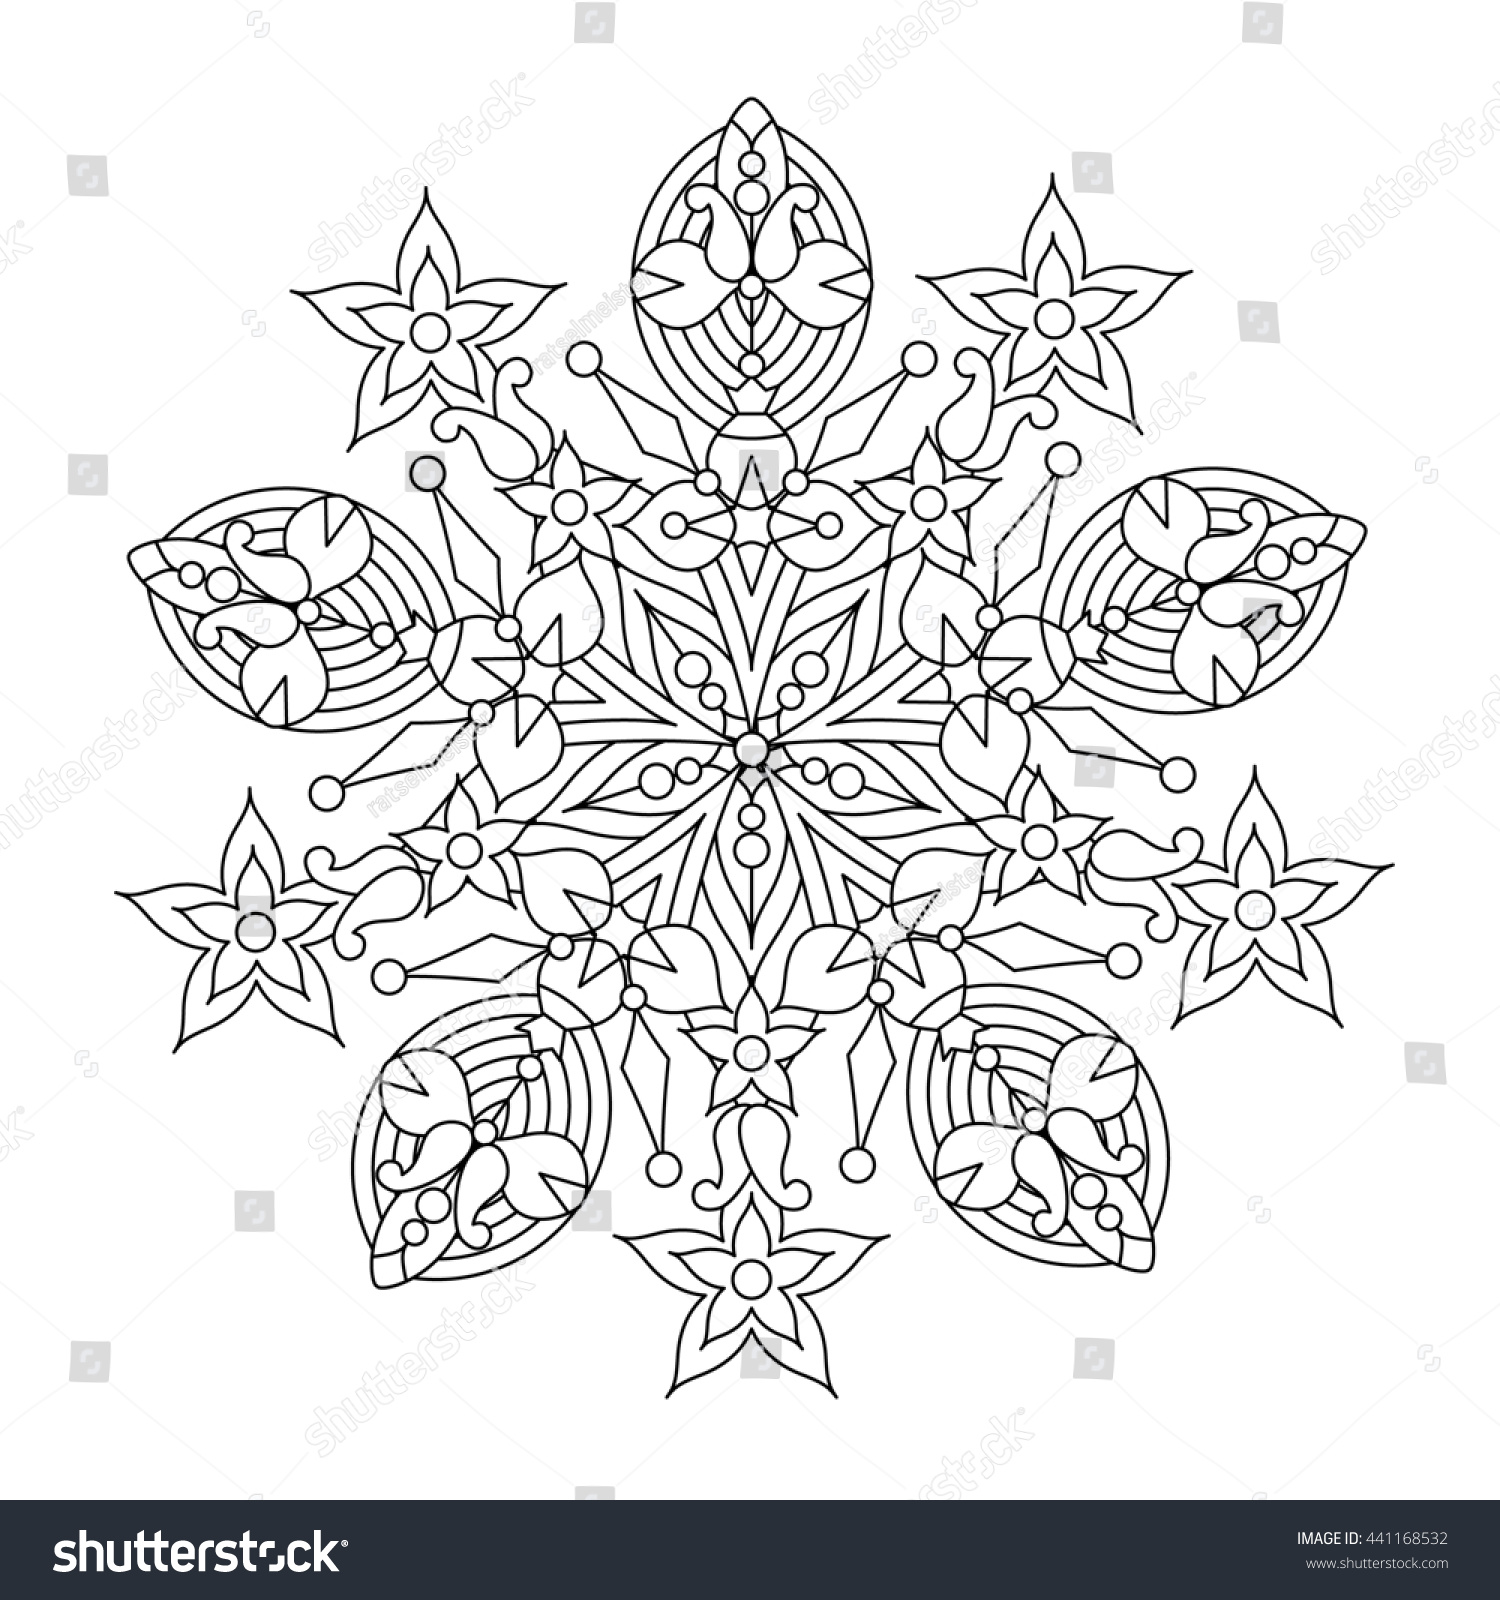 Coloring book snowflake - Abstract Mandala Or Whimsical Snowflake Line Art Design Or Coloring Page